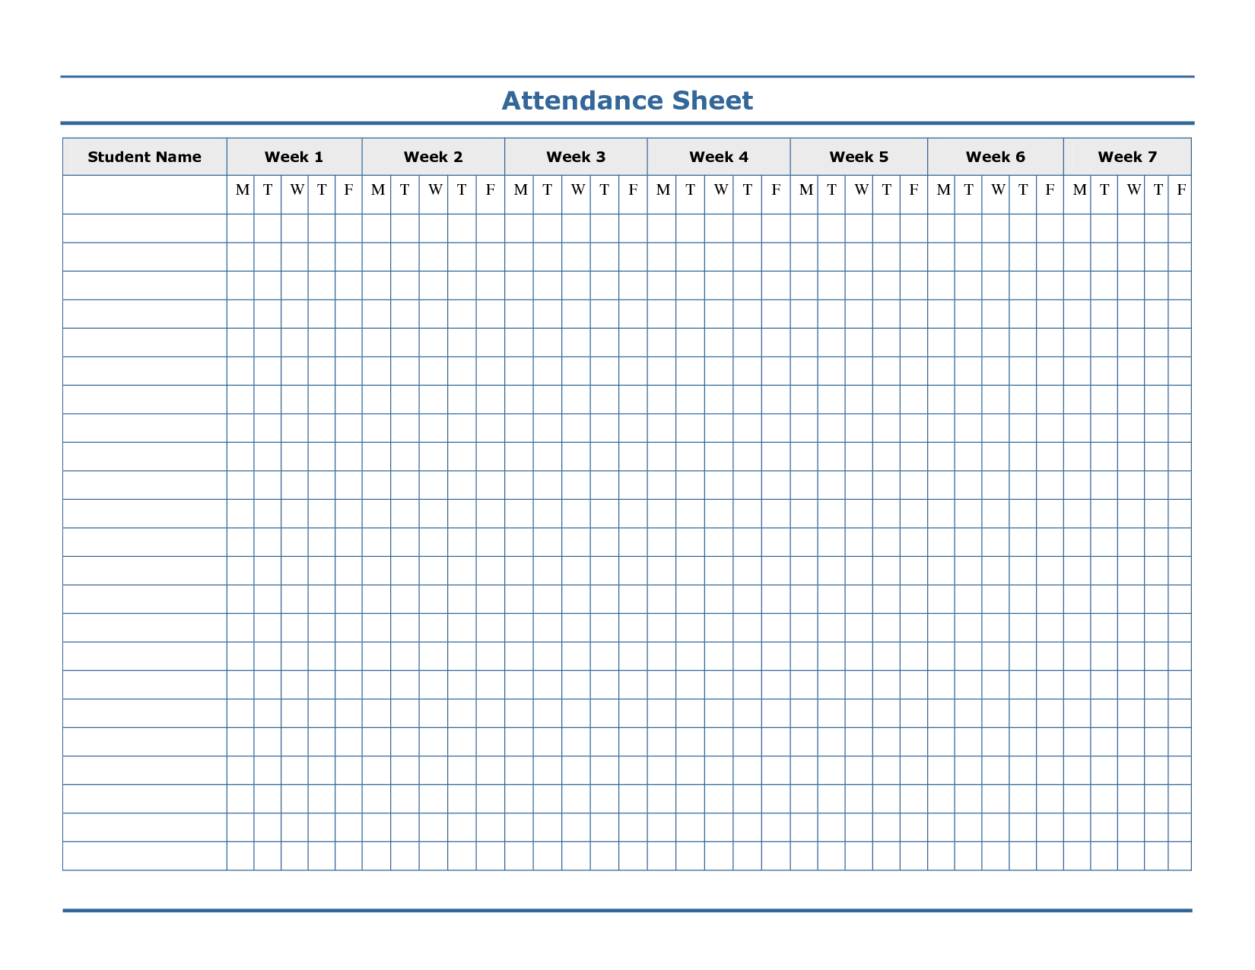 Spreadsheet Attendance Template Inside Employee Attendance Tracking Spreadsheet Template Free Google